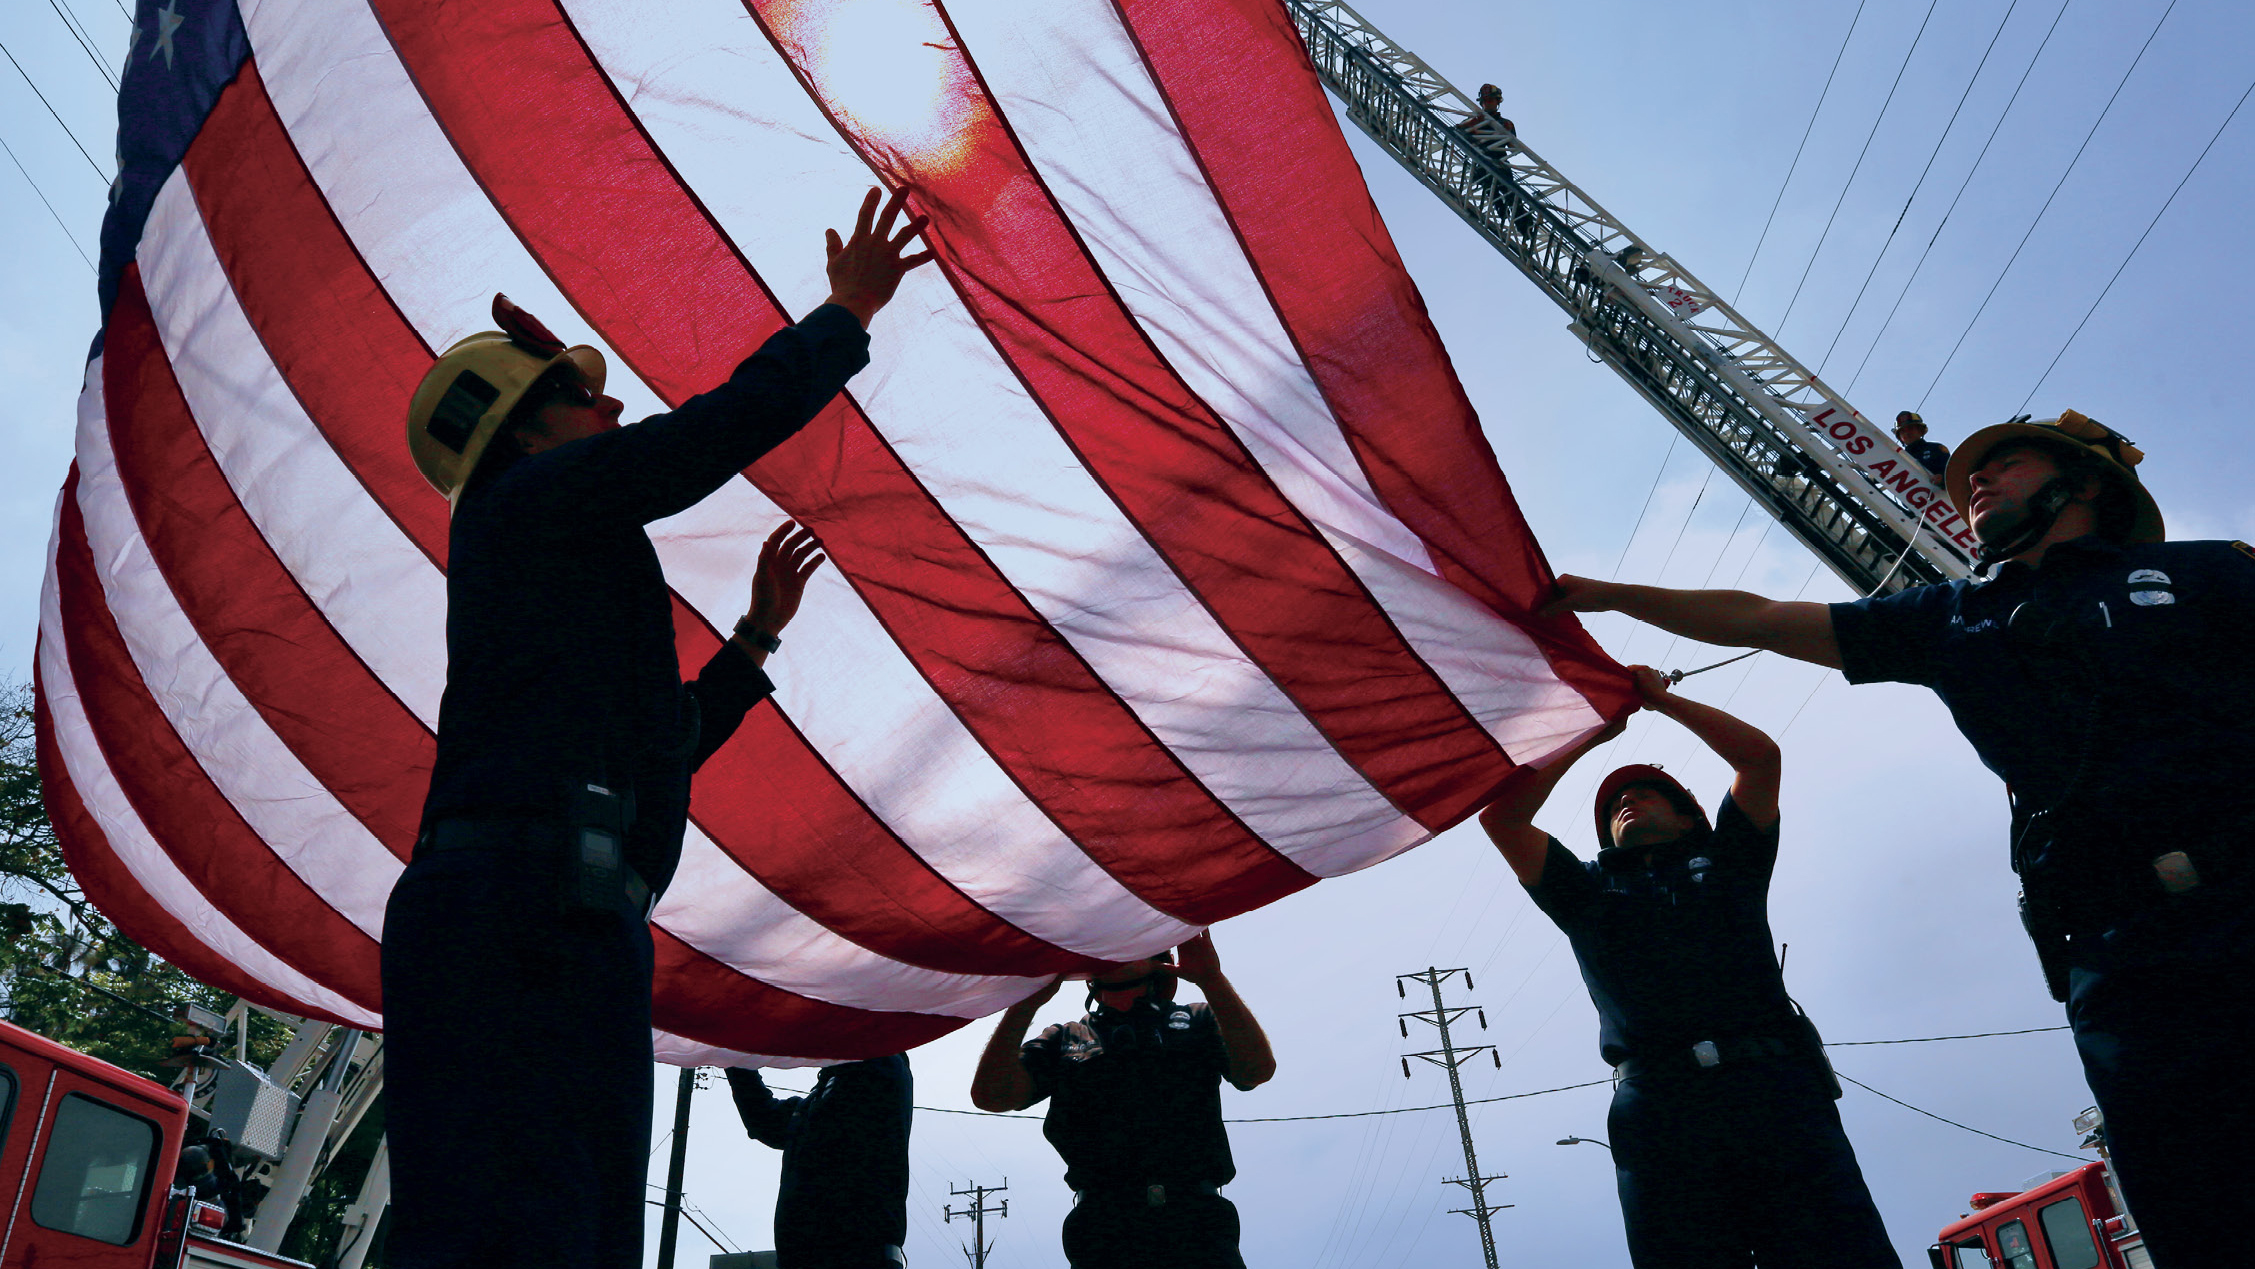 Firefighters raising a flag